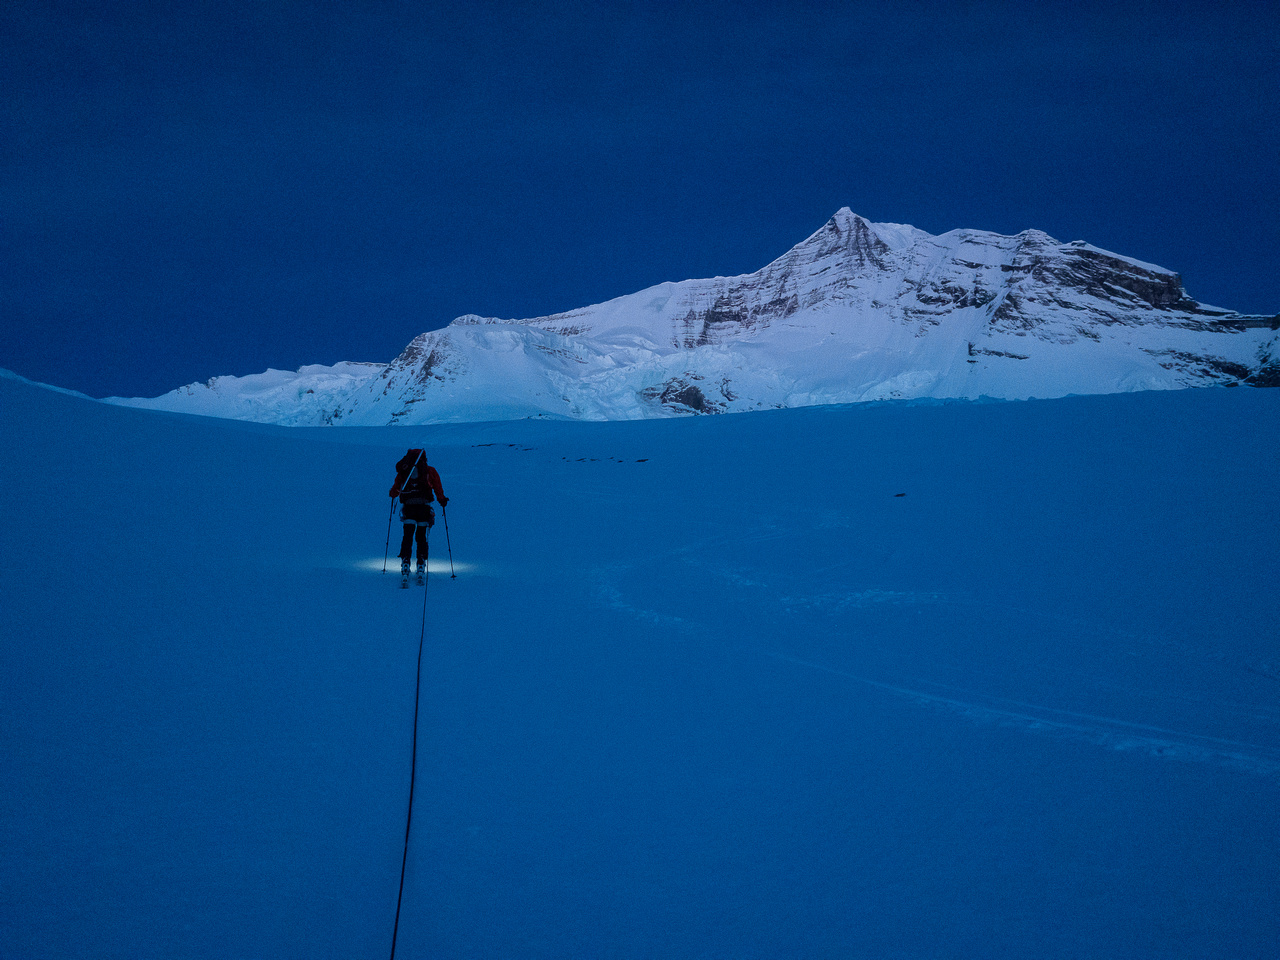 Heading up the Robson Glacier at first light. The Dome is directly above us here.